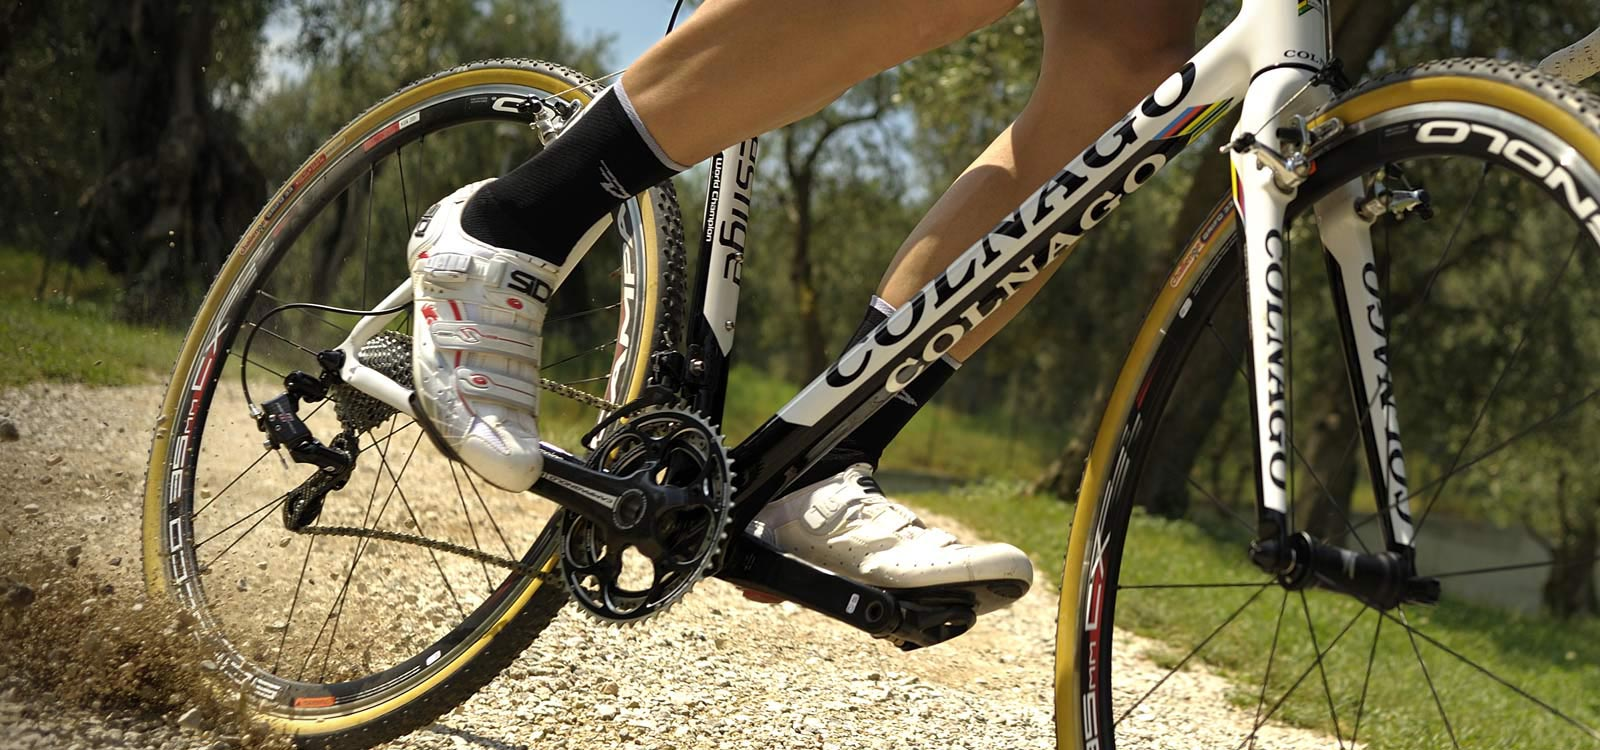 CX - Mechanical Groupsets